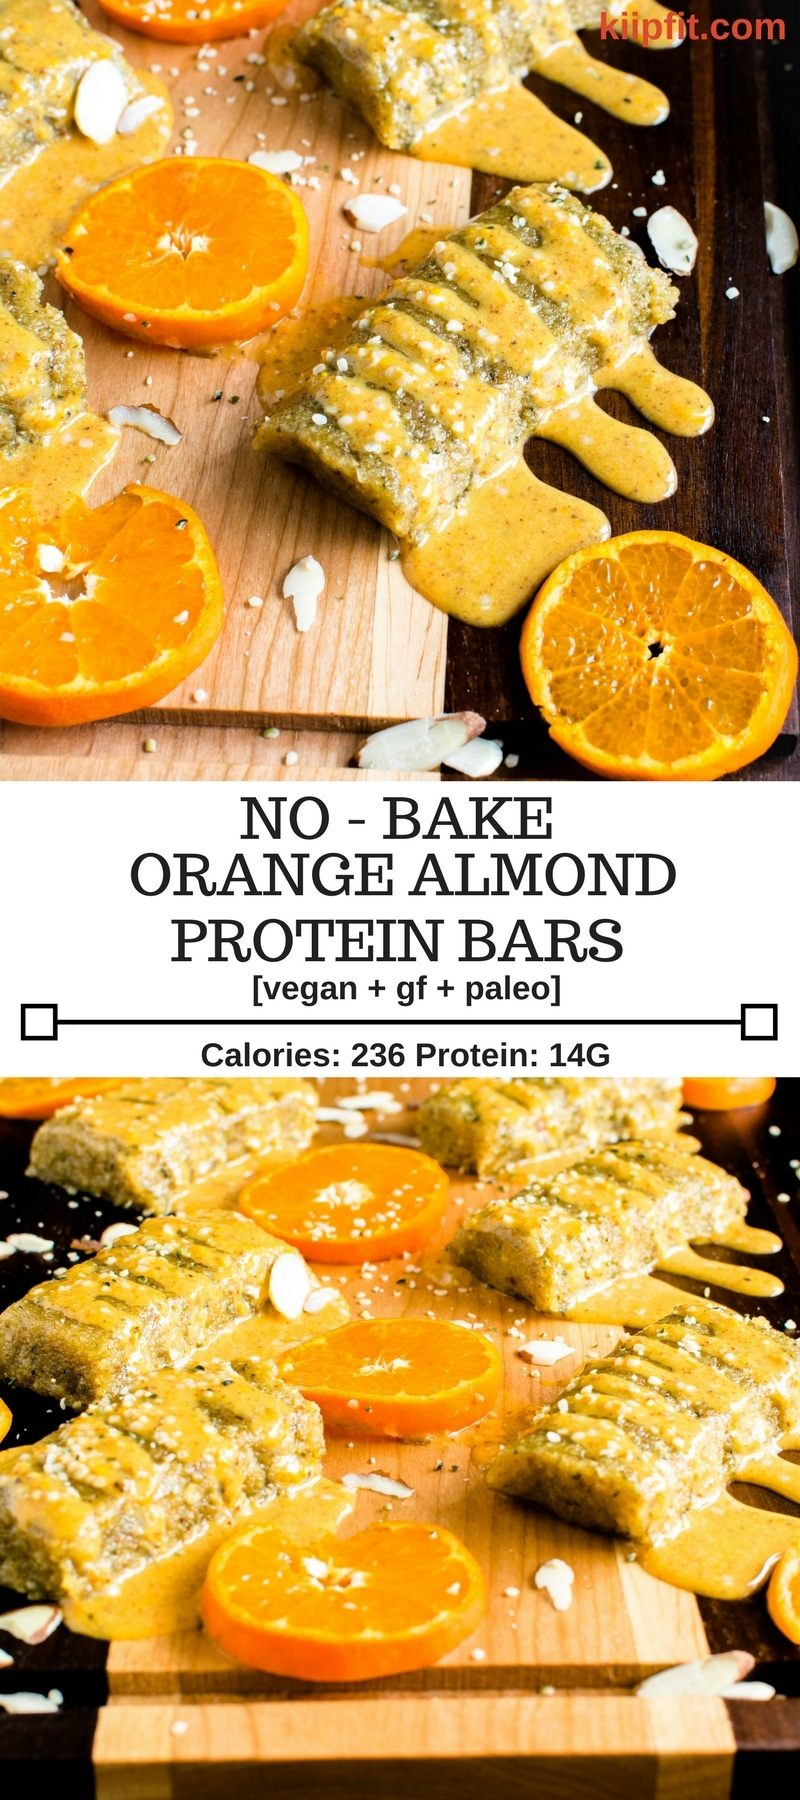 No Bake Orange Almond Protein Bars are perfectly sweetened and are moist, soft and chewy. These are vegan, gluten free and paleo. Moreover, these bars are suitable for all types of diet and for kids as well [ Vegan + GF + Paleo ] kiipfit.com